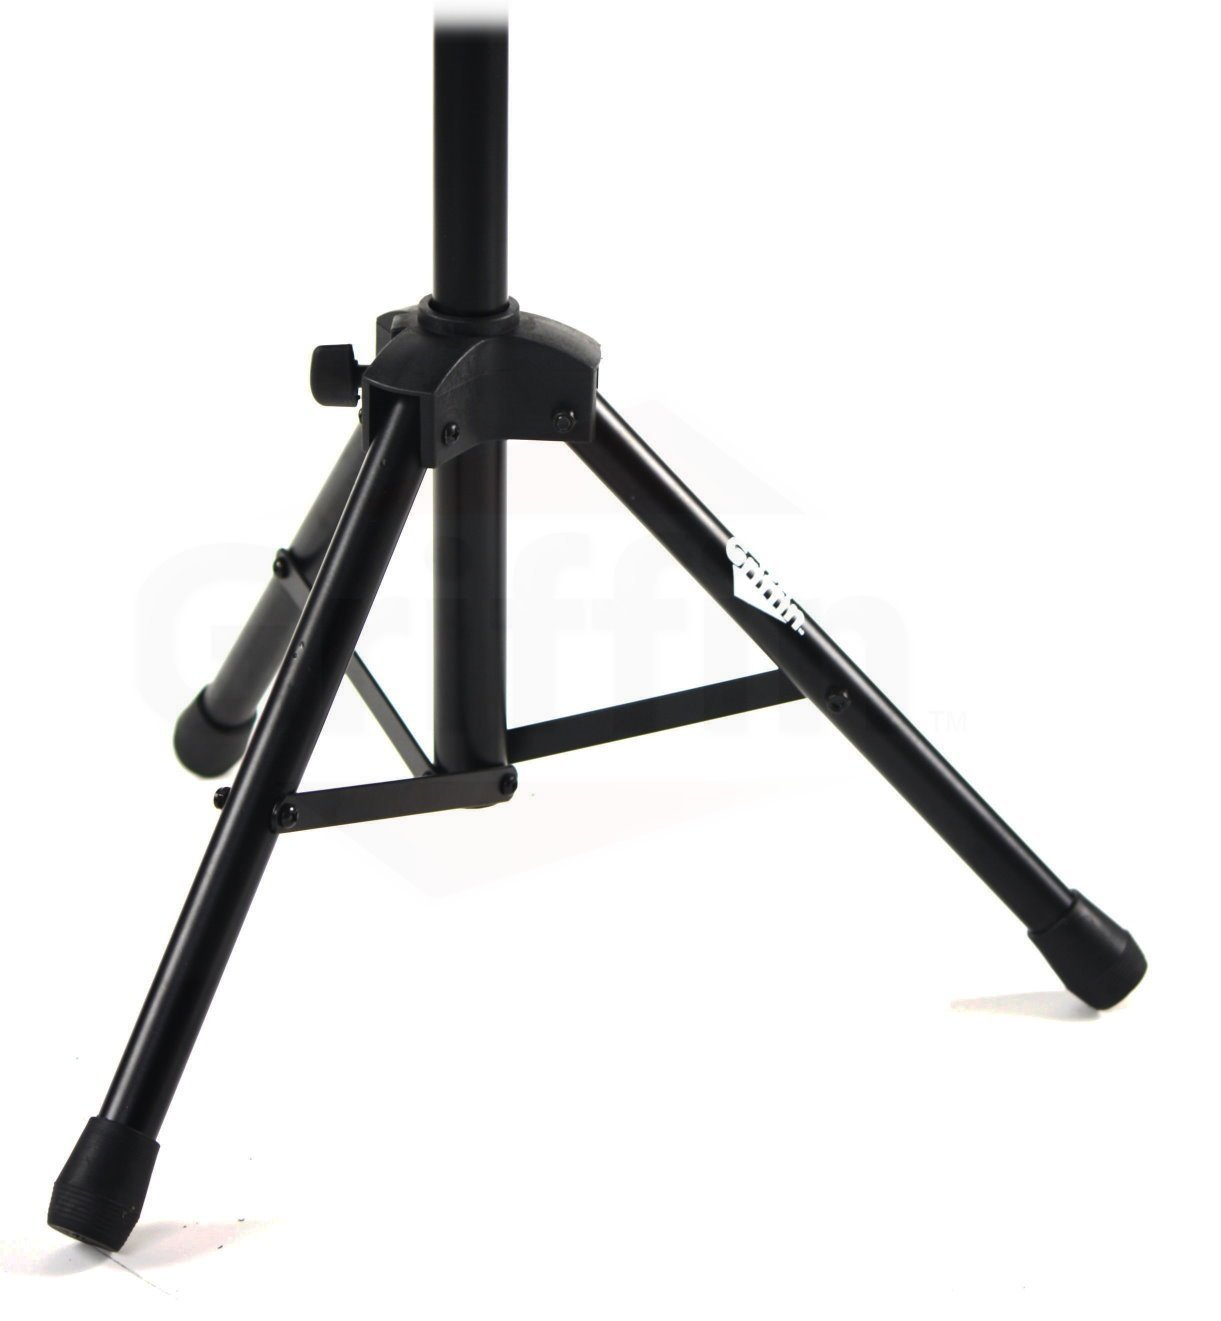 conductor music stand sheet metal folding deluxe holder by griffin griffin stands. Black Bedroom Furniture Sets. Home Design Ideas